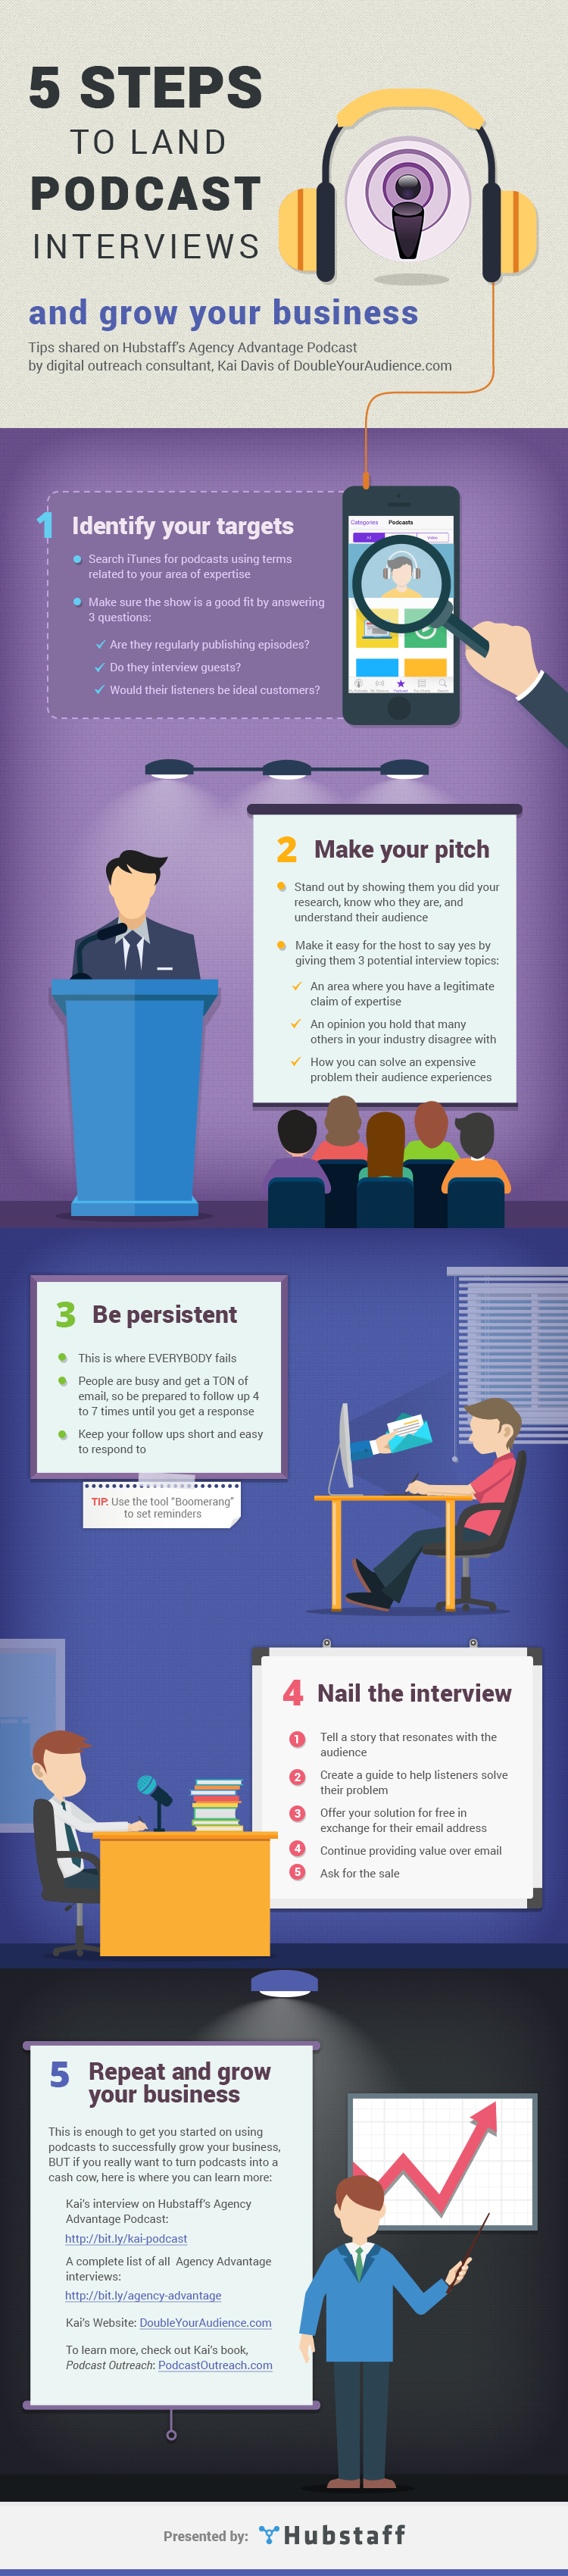 5 Steps To Land Podcast Interview And Grow Your Business #Infographic